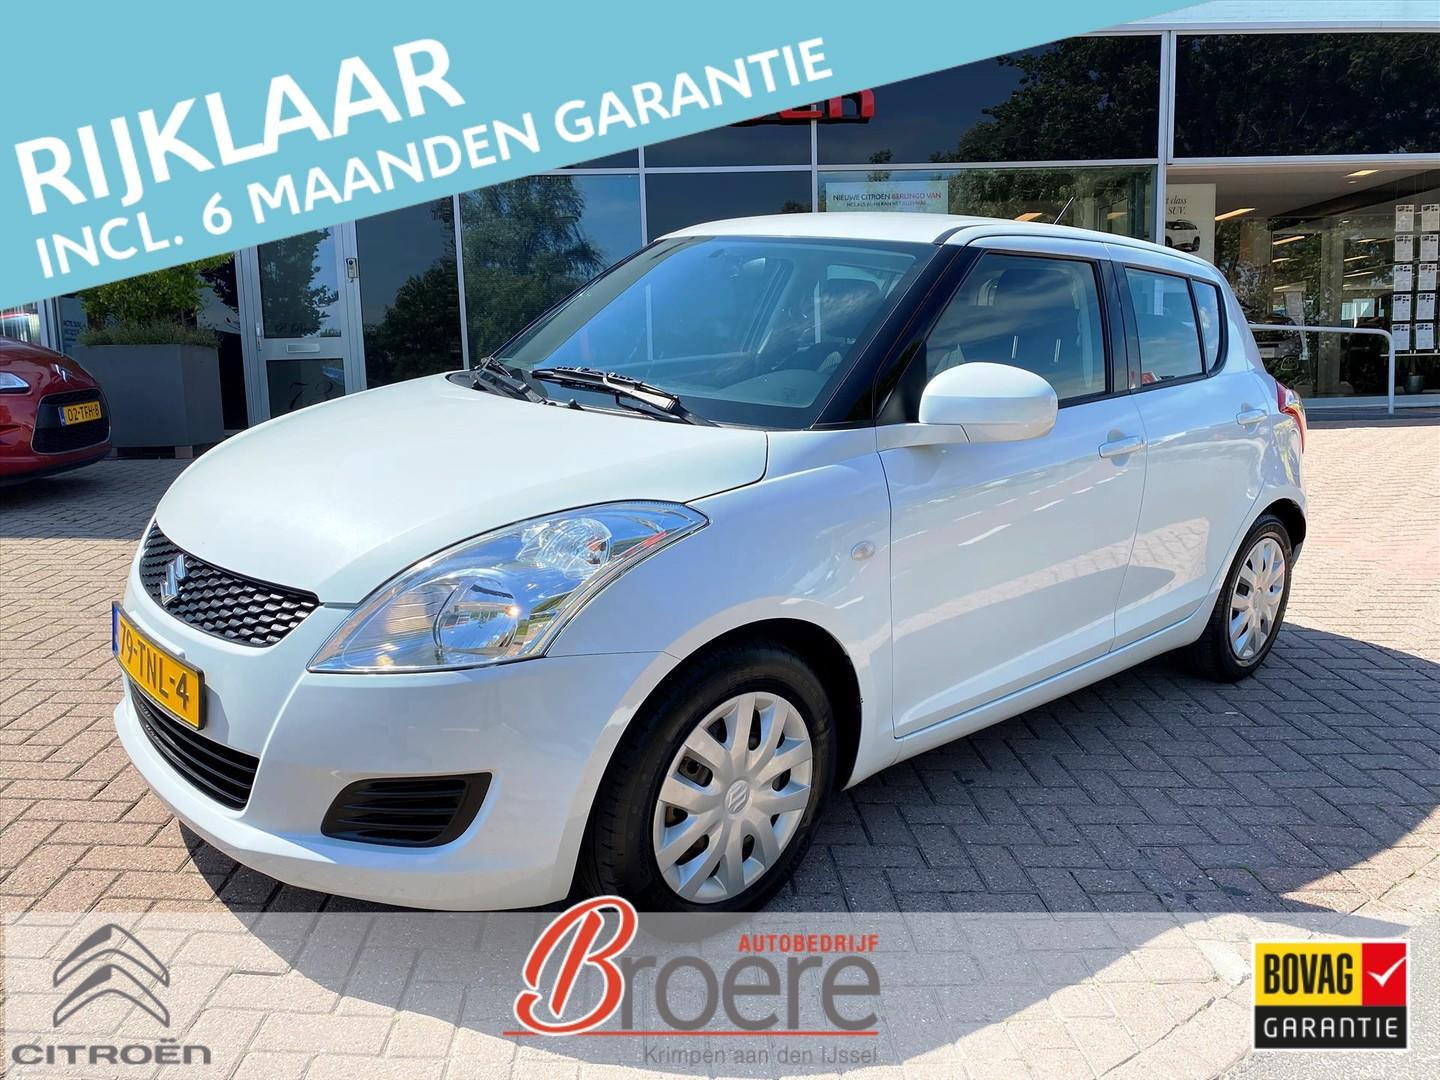 Suzuki Swift 1.2 90pk 5d comfort easss airco trekhaak